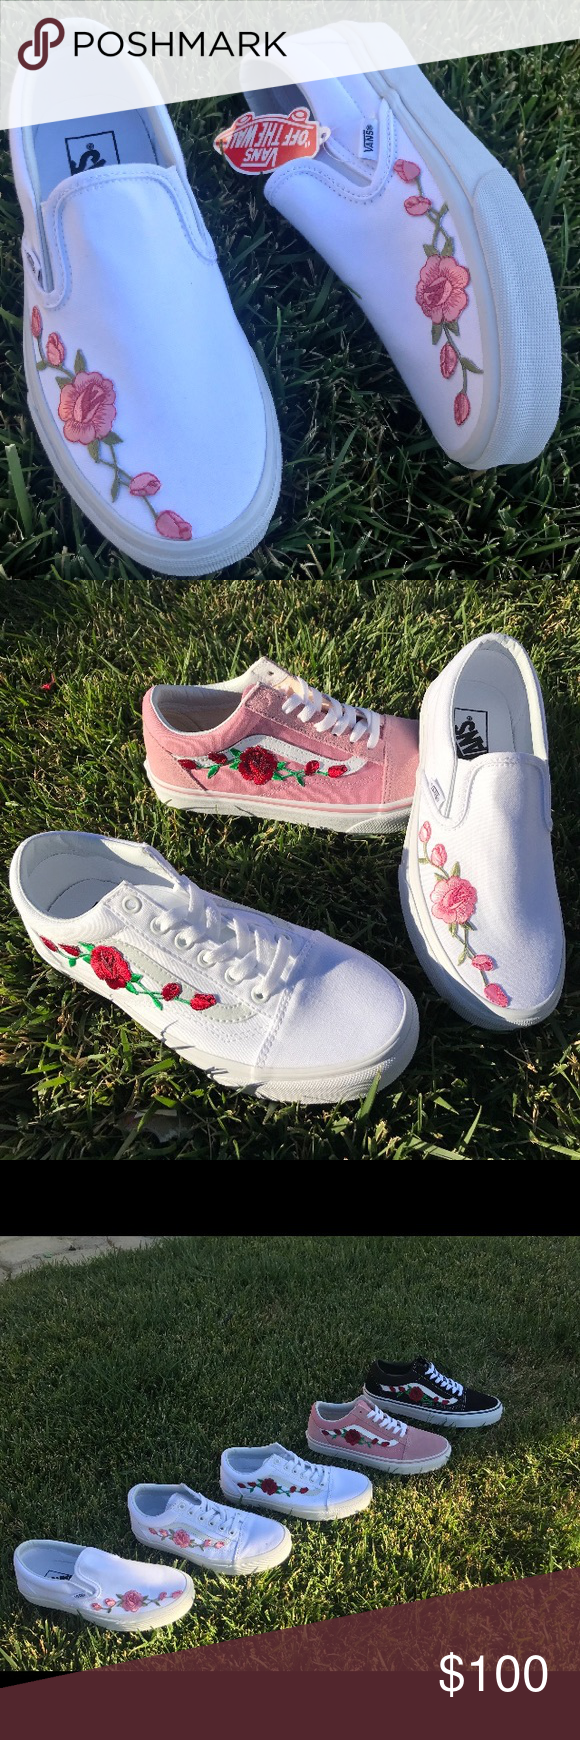 090a6b2130 Cherry Blossom · Espadrilles · embroidered vans vans in all colors and  sizes! embroidered with pink or red roses.